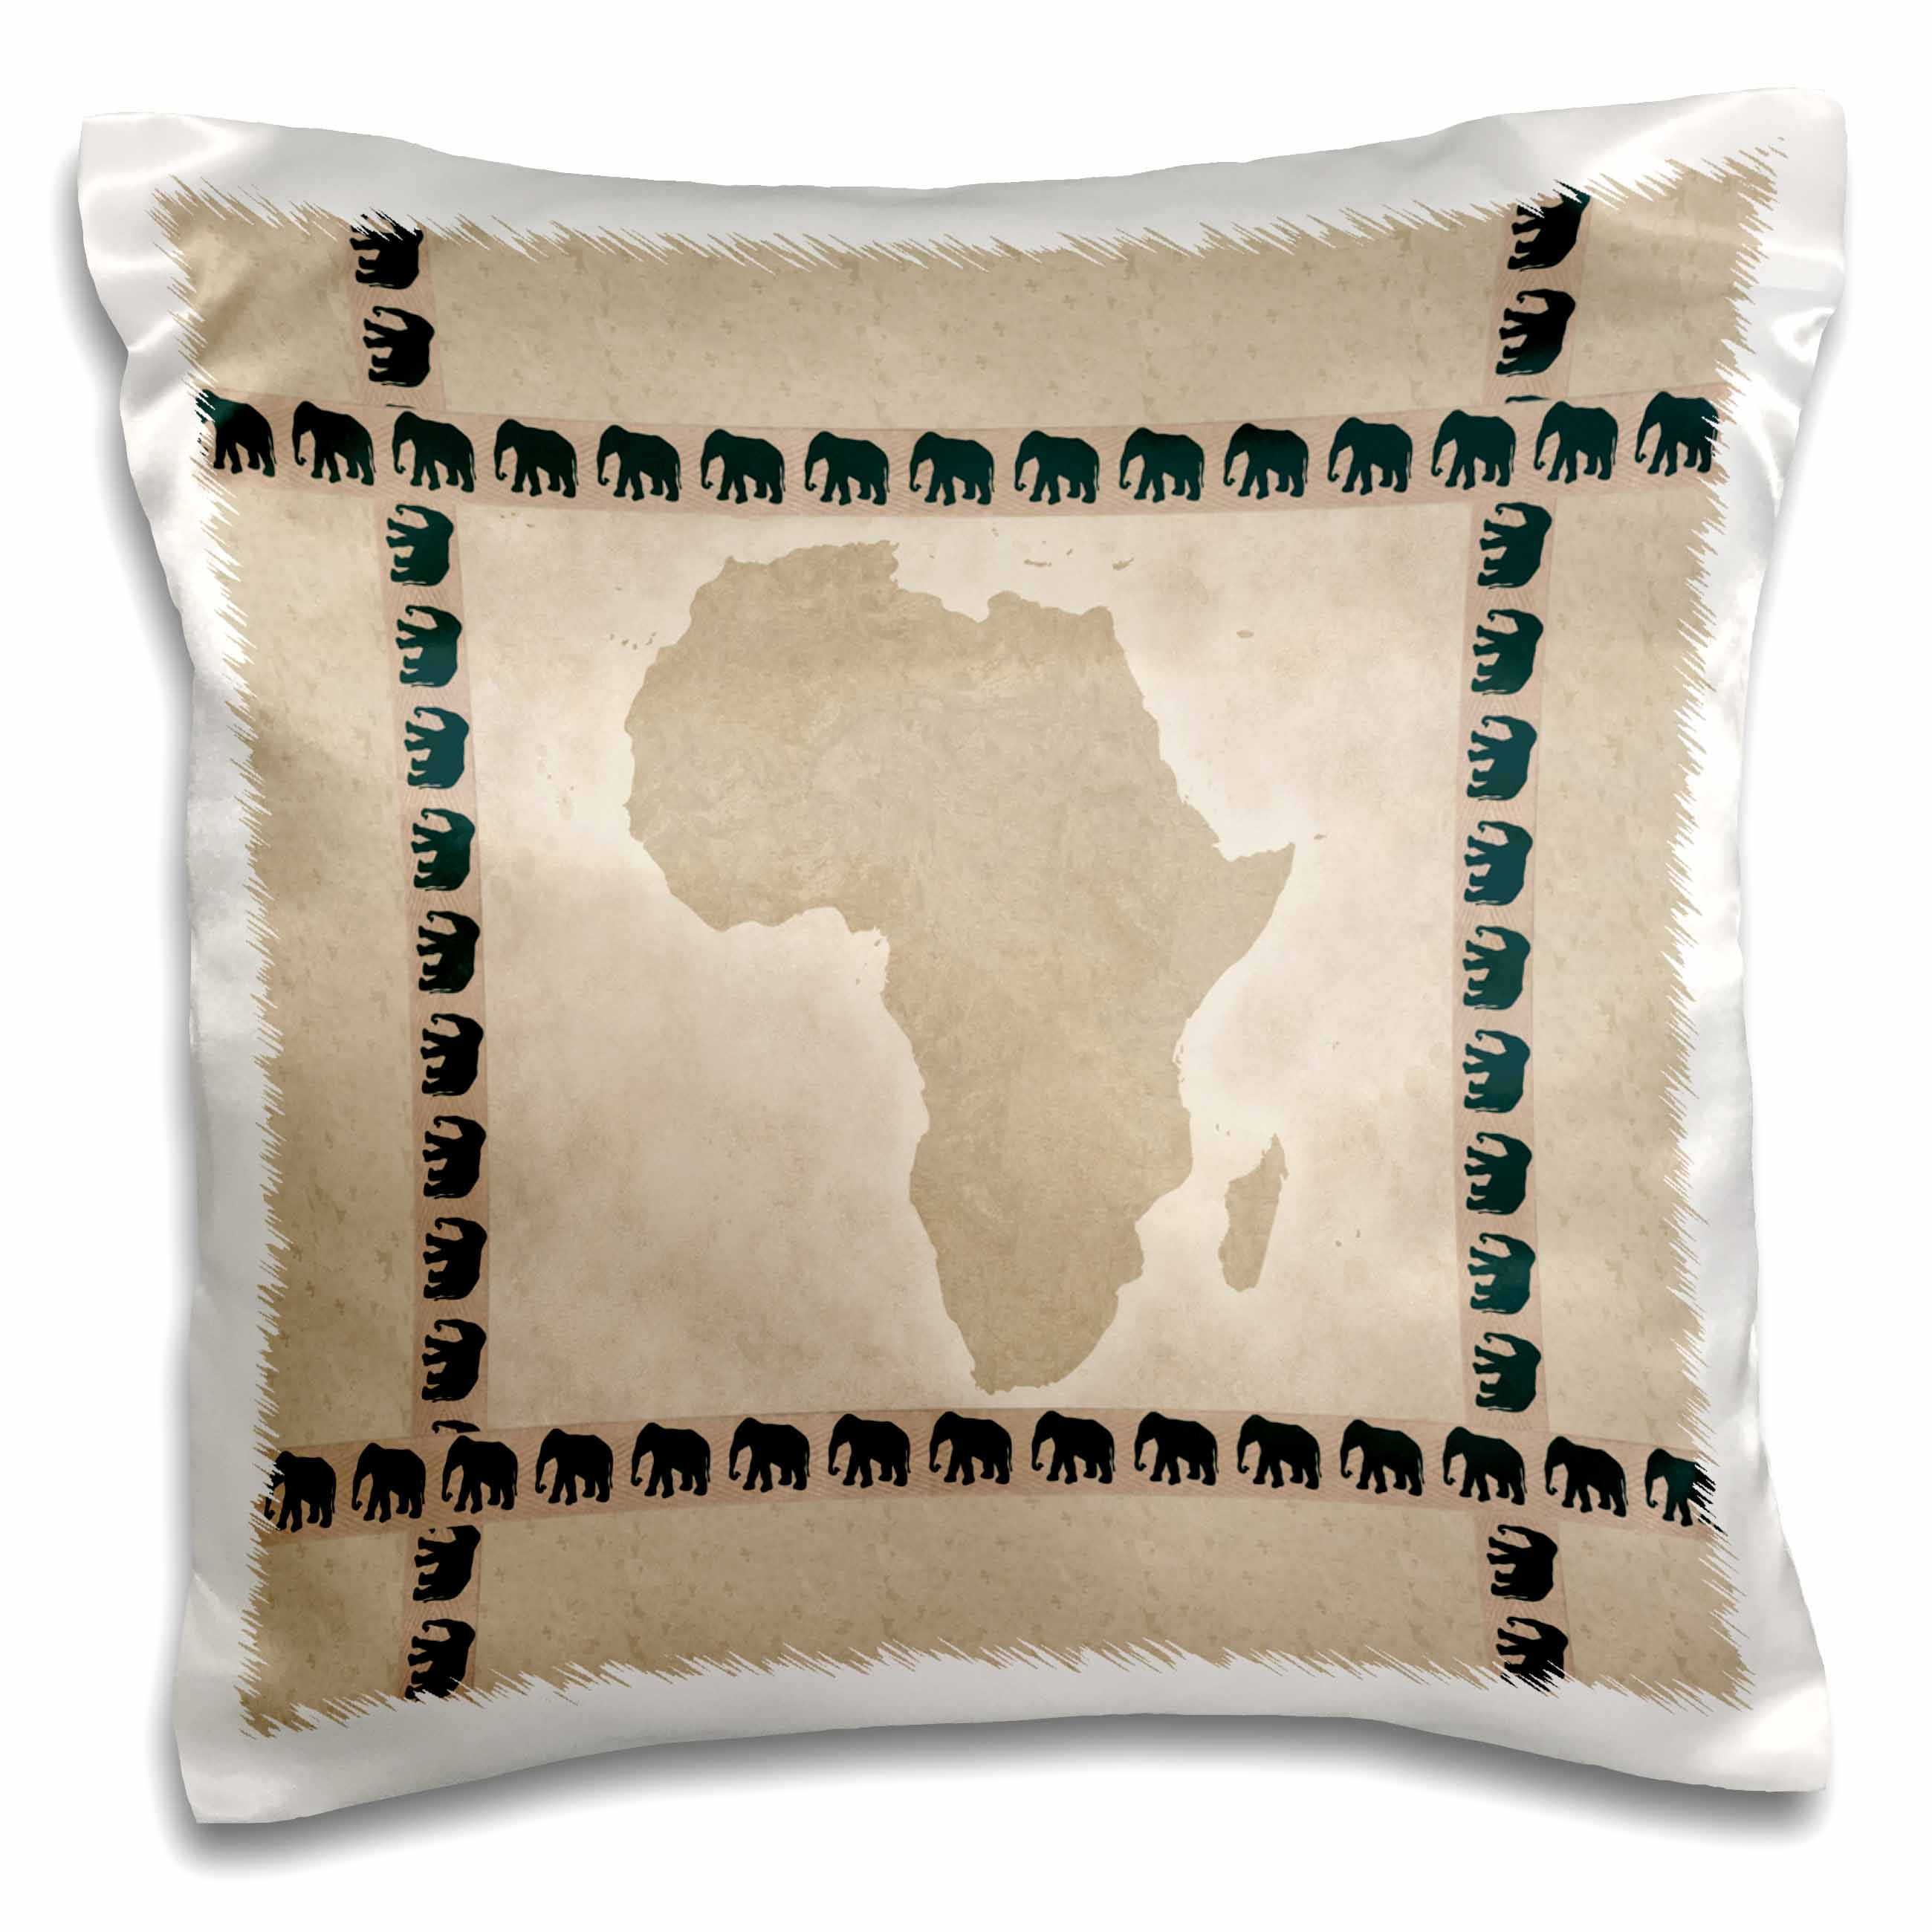 3dRose Africa with Elephants, Pillow Case, 16 by 16-inch